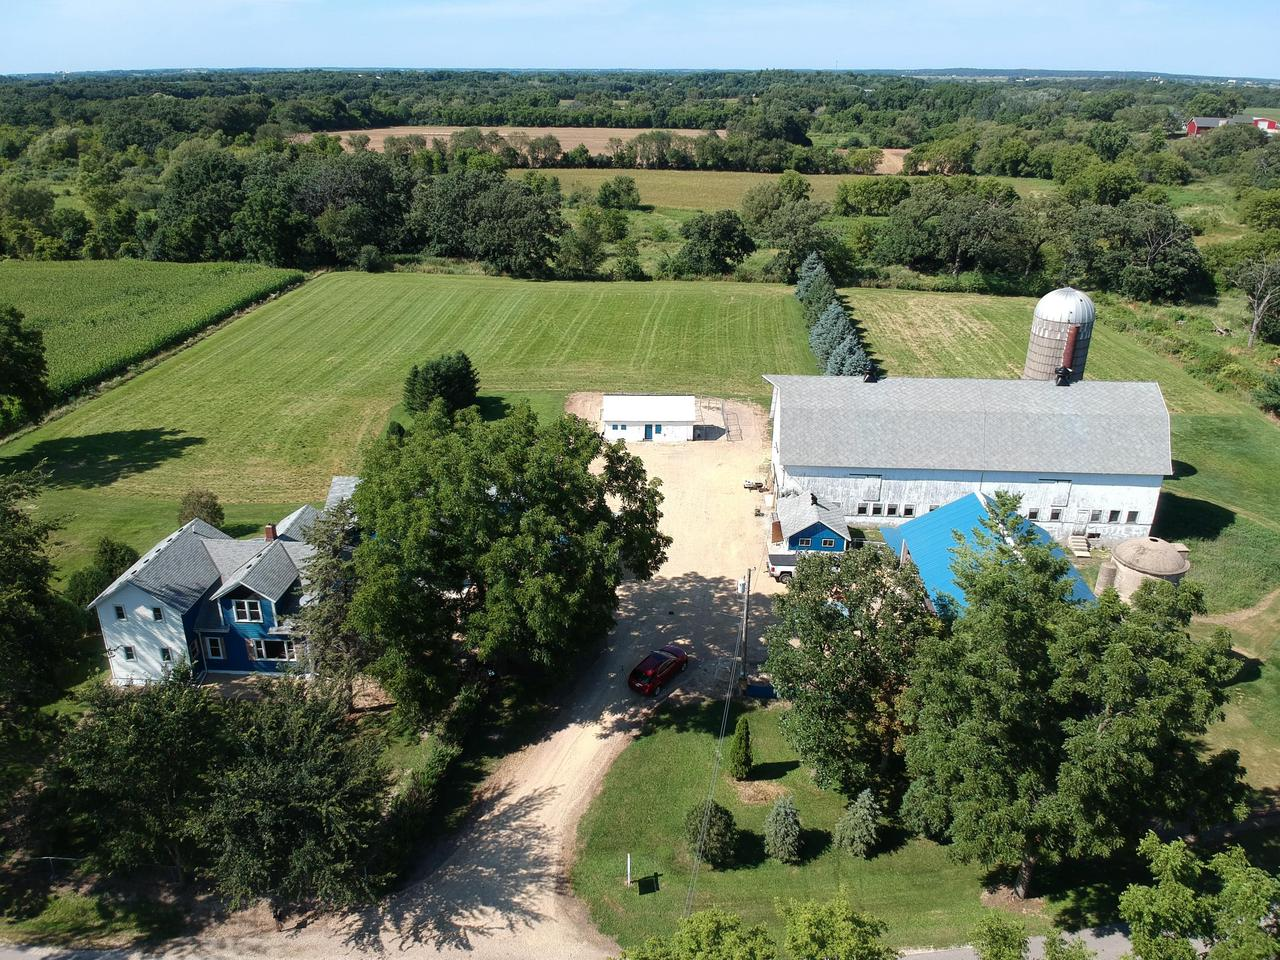 VERY, VERY, VERY MOTIVATED SELLER!  BRING YOUR OFFERS!! Located off the beaten trail, 5 ACRES on Turtle Creek. Stop paying storage fees.  Save money by storing all of your equipment, boats, toys, cars and even animals.  There is room for all of it here. 3 garages; 32'x33'; 16'x20'; and 15'x30'.  There is also a 33'x100' barn that is in great shape.  You will be 1 mile from snowmobile trail, 2 miles from horse trails and in your back yard, enjoy kayaking or tubing down the beautiful Turtle Creek.  Enjoy boating? You are only 10 to 15 mile from area lakes. You can have everything in one location and live there too.  The 100 year old farm house features many updates.  Come enjoy the fresh country air and tranquil scenery that will surround you.